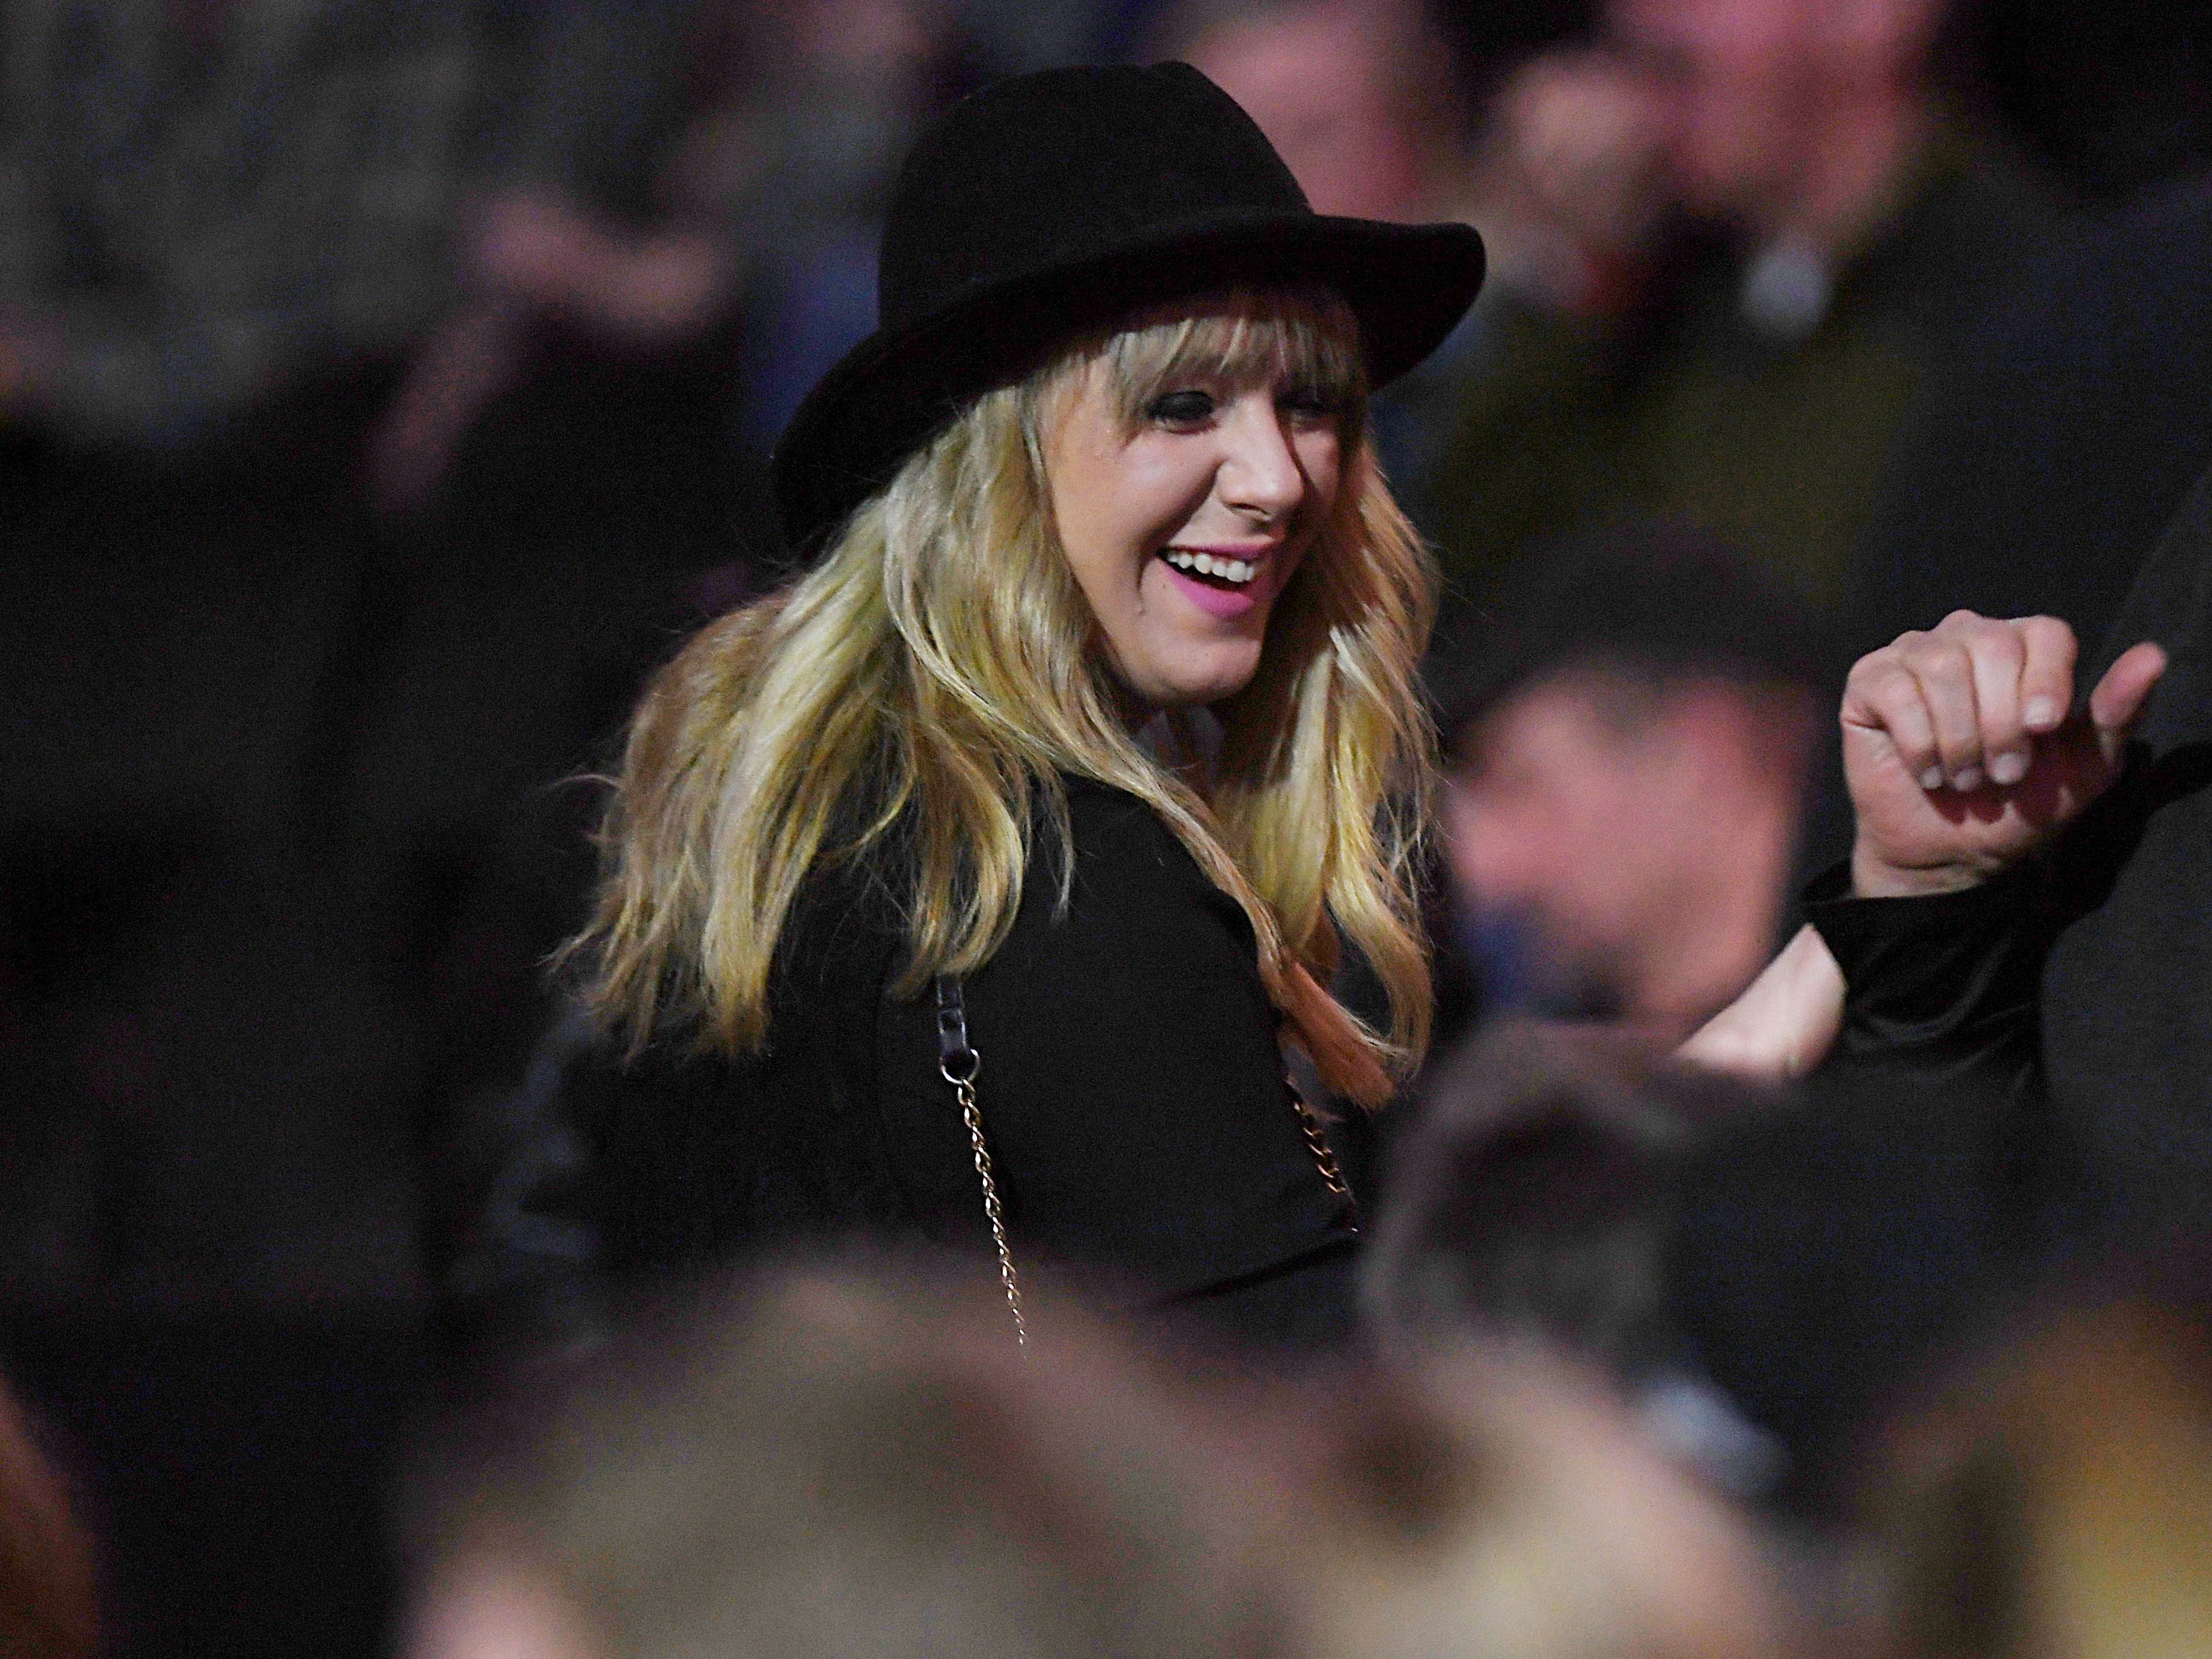 A Fleetwood Mac fan is complimented for her hat during the concert at the Denny Sanford Premier Center Saturday, Feb. 2, in Sioux Falls. The new lineup included Mick Fleetwood, John McVie, Stevie Nicks, Christine McVie, Mike Campbell and Neil Finn.